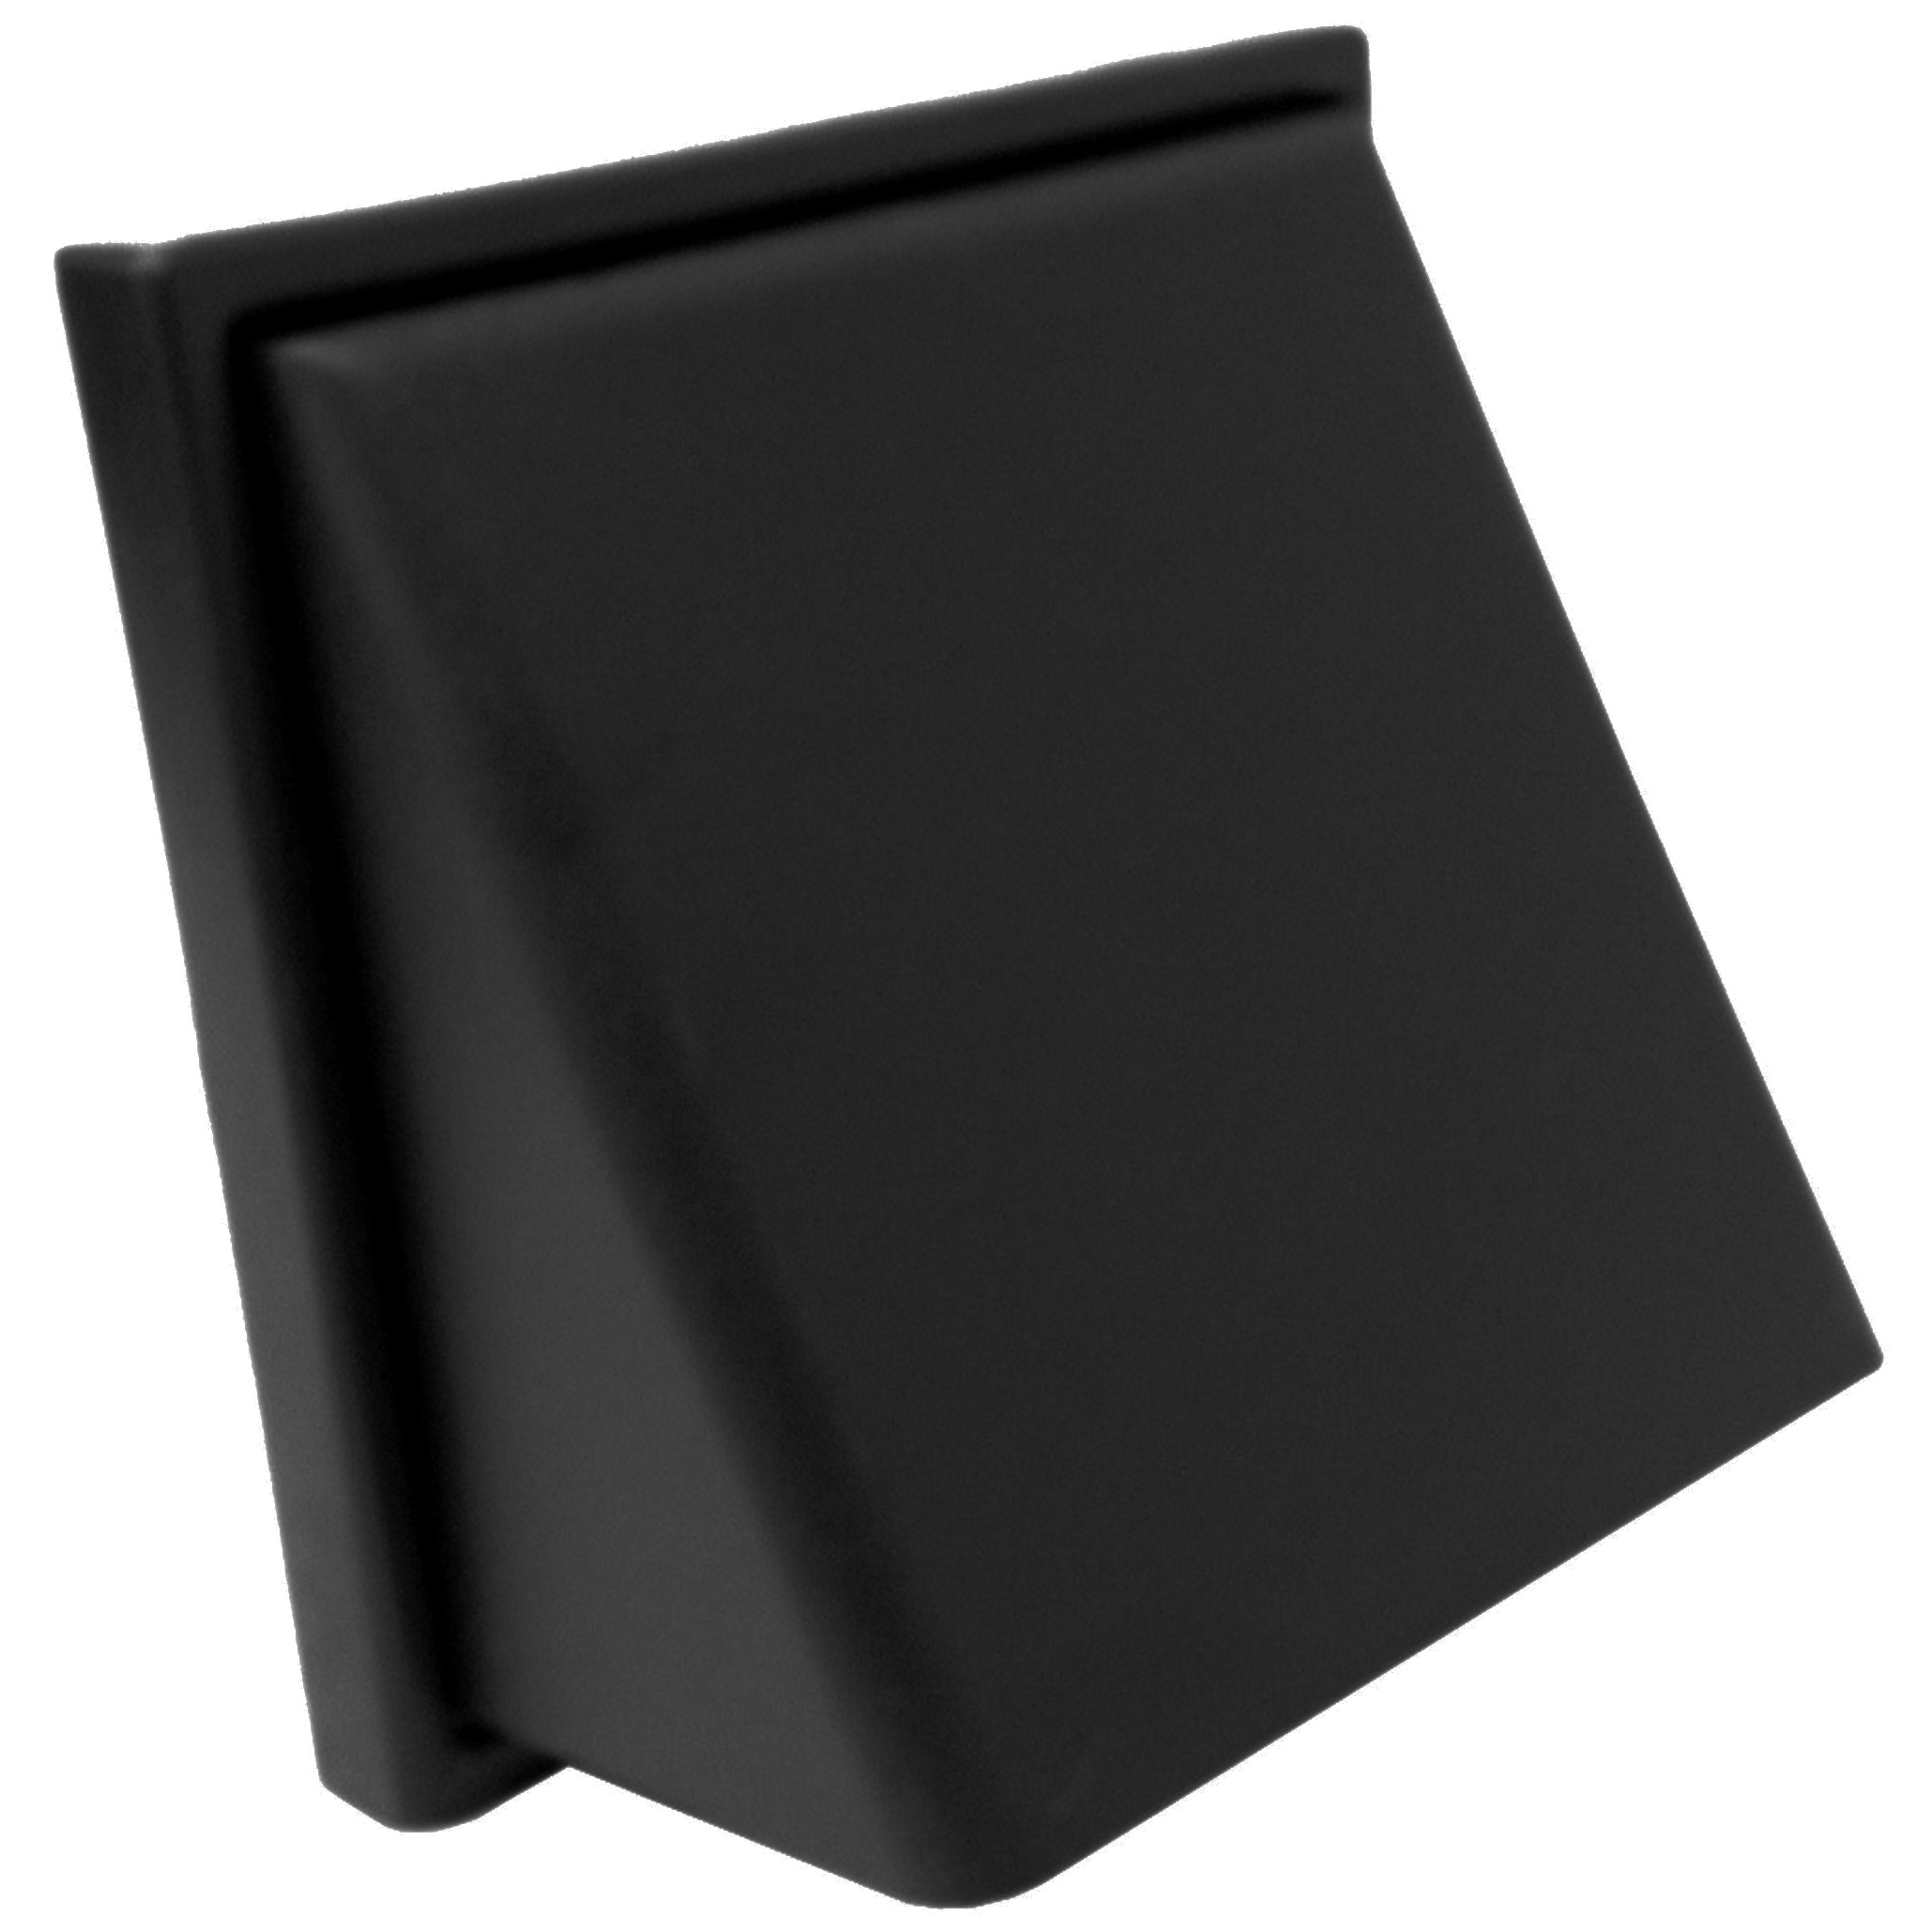 Manrose Round Ducting Pipe Wall Hood Cowled Outlet - Black, 100mm